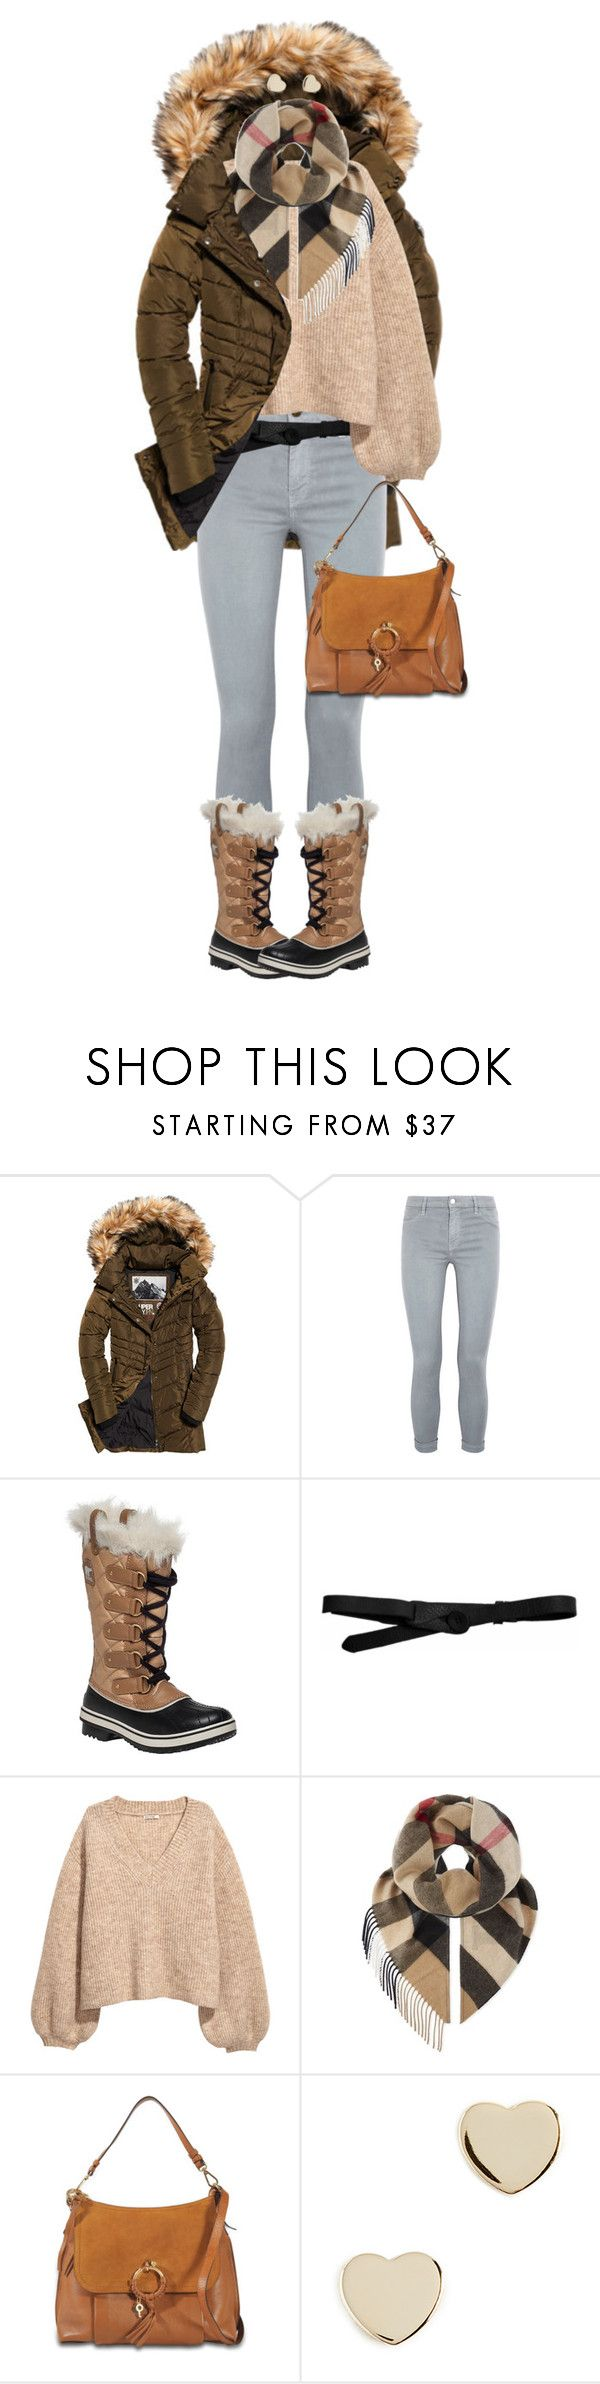 """Winter Boots"" by ittie-kittie ❤ liked on Polyvore featuring Superdry, J Brand, SOREL, Lowie, Burberry, See by Chloé, Shashi, Winter, winterfashion and winterboots"